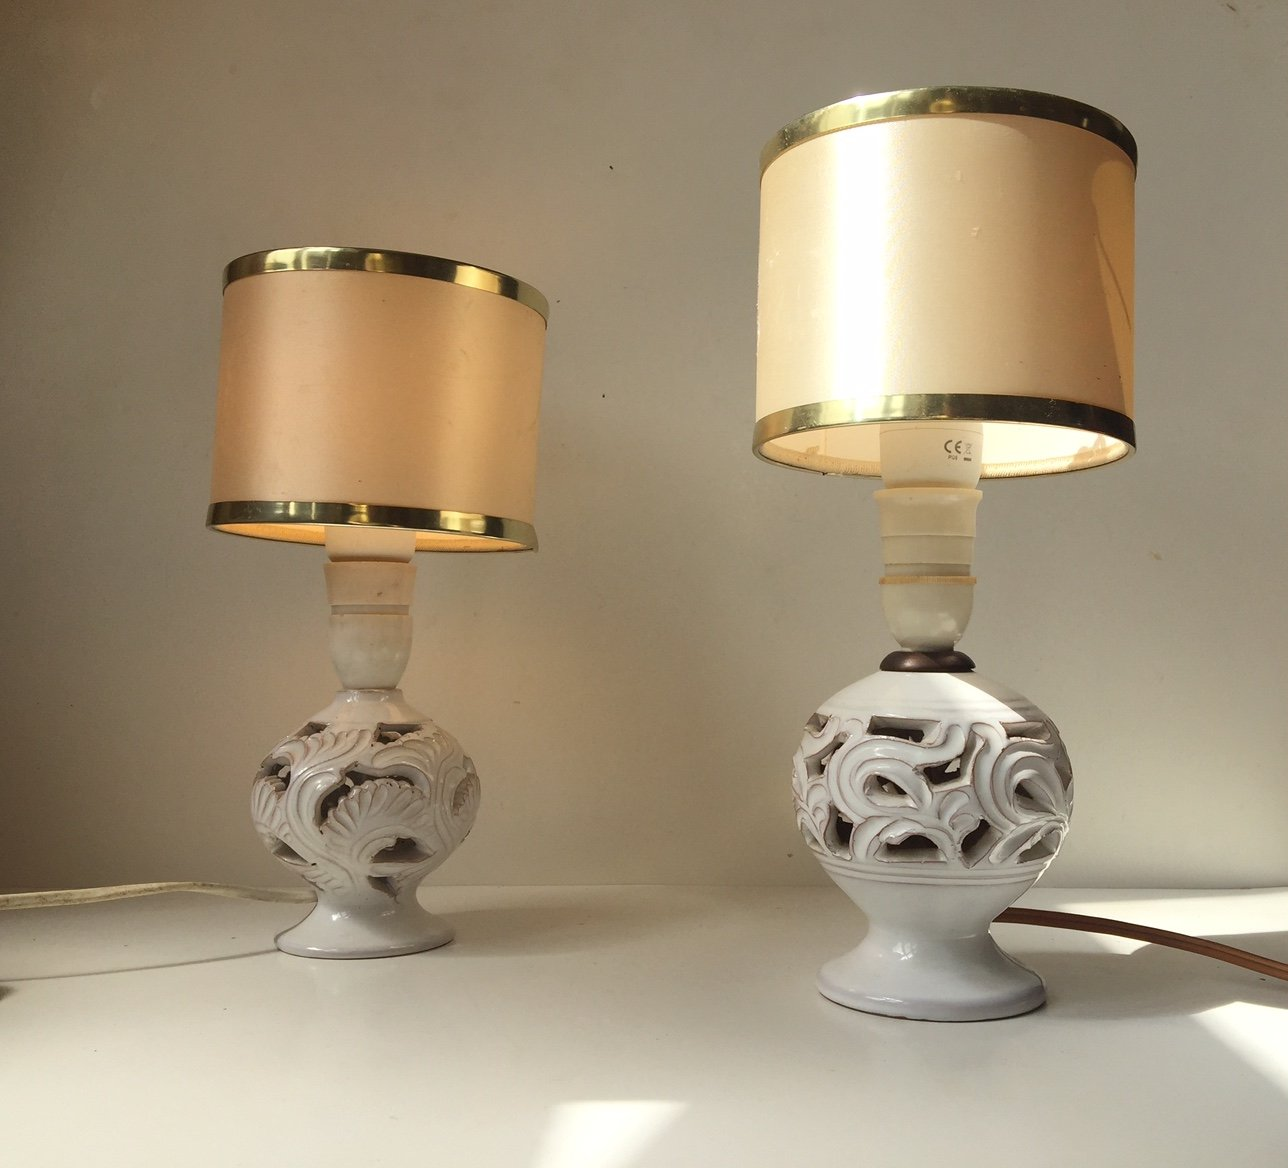 Vintage perforated danish pottery table lamps by michael andersen vintage perforated danish pottery table lamps by michael andersen set of 2 geotapseo Images